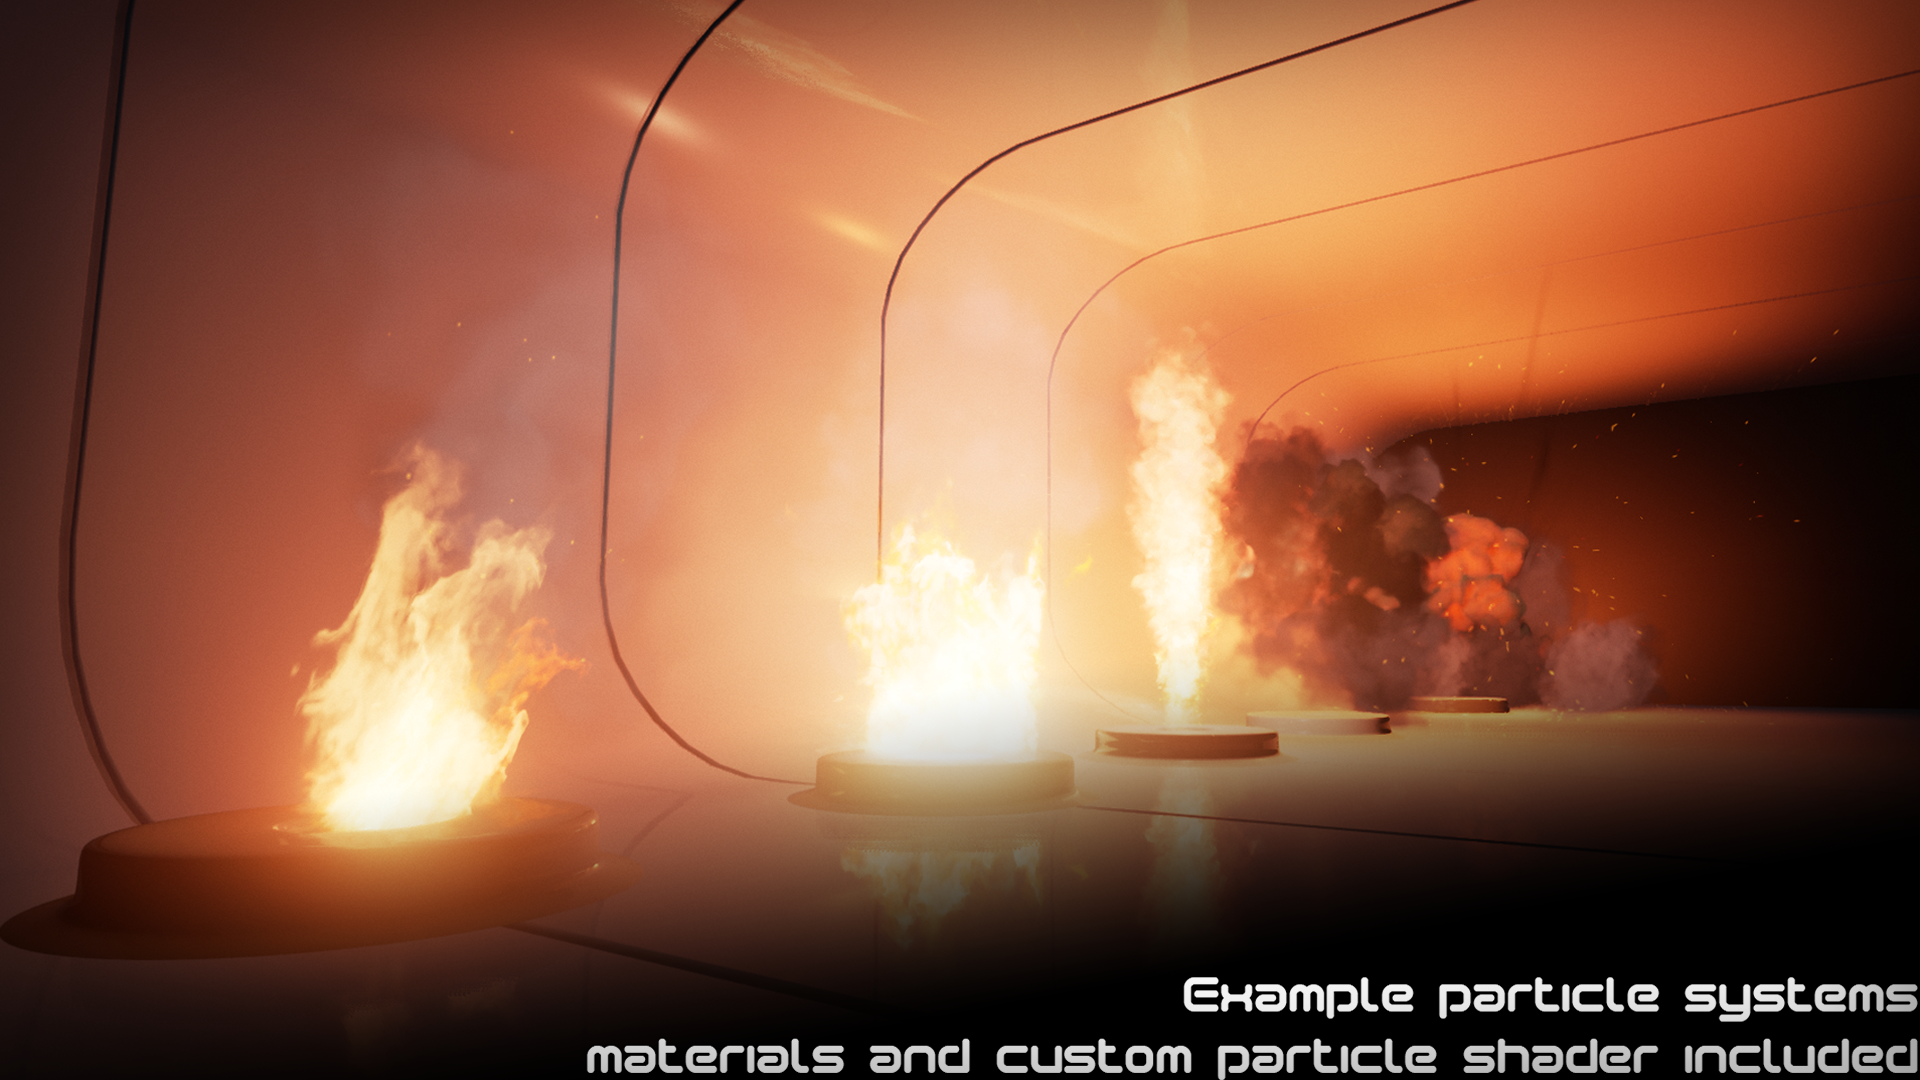 Pyro Particle Texture Pack v1 by polysplendor in Visual Effects